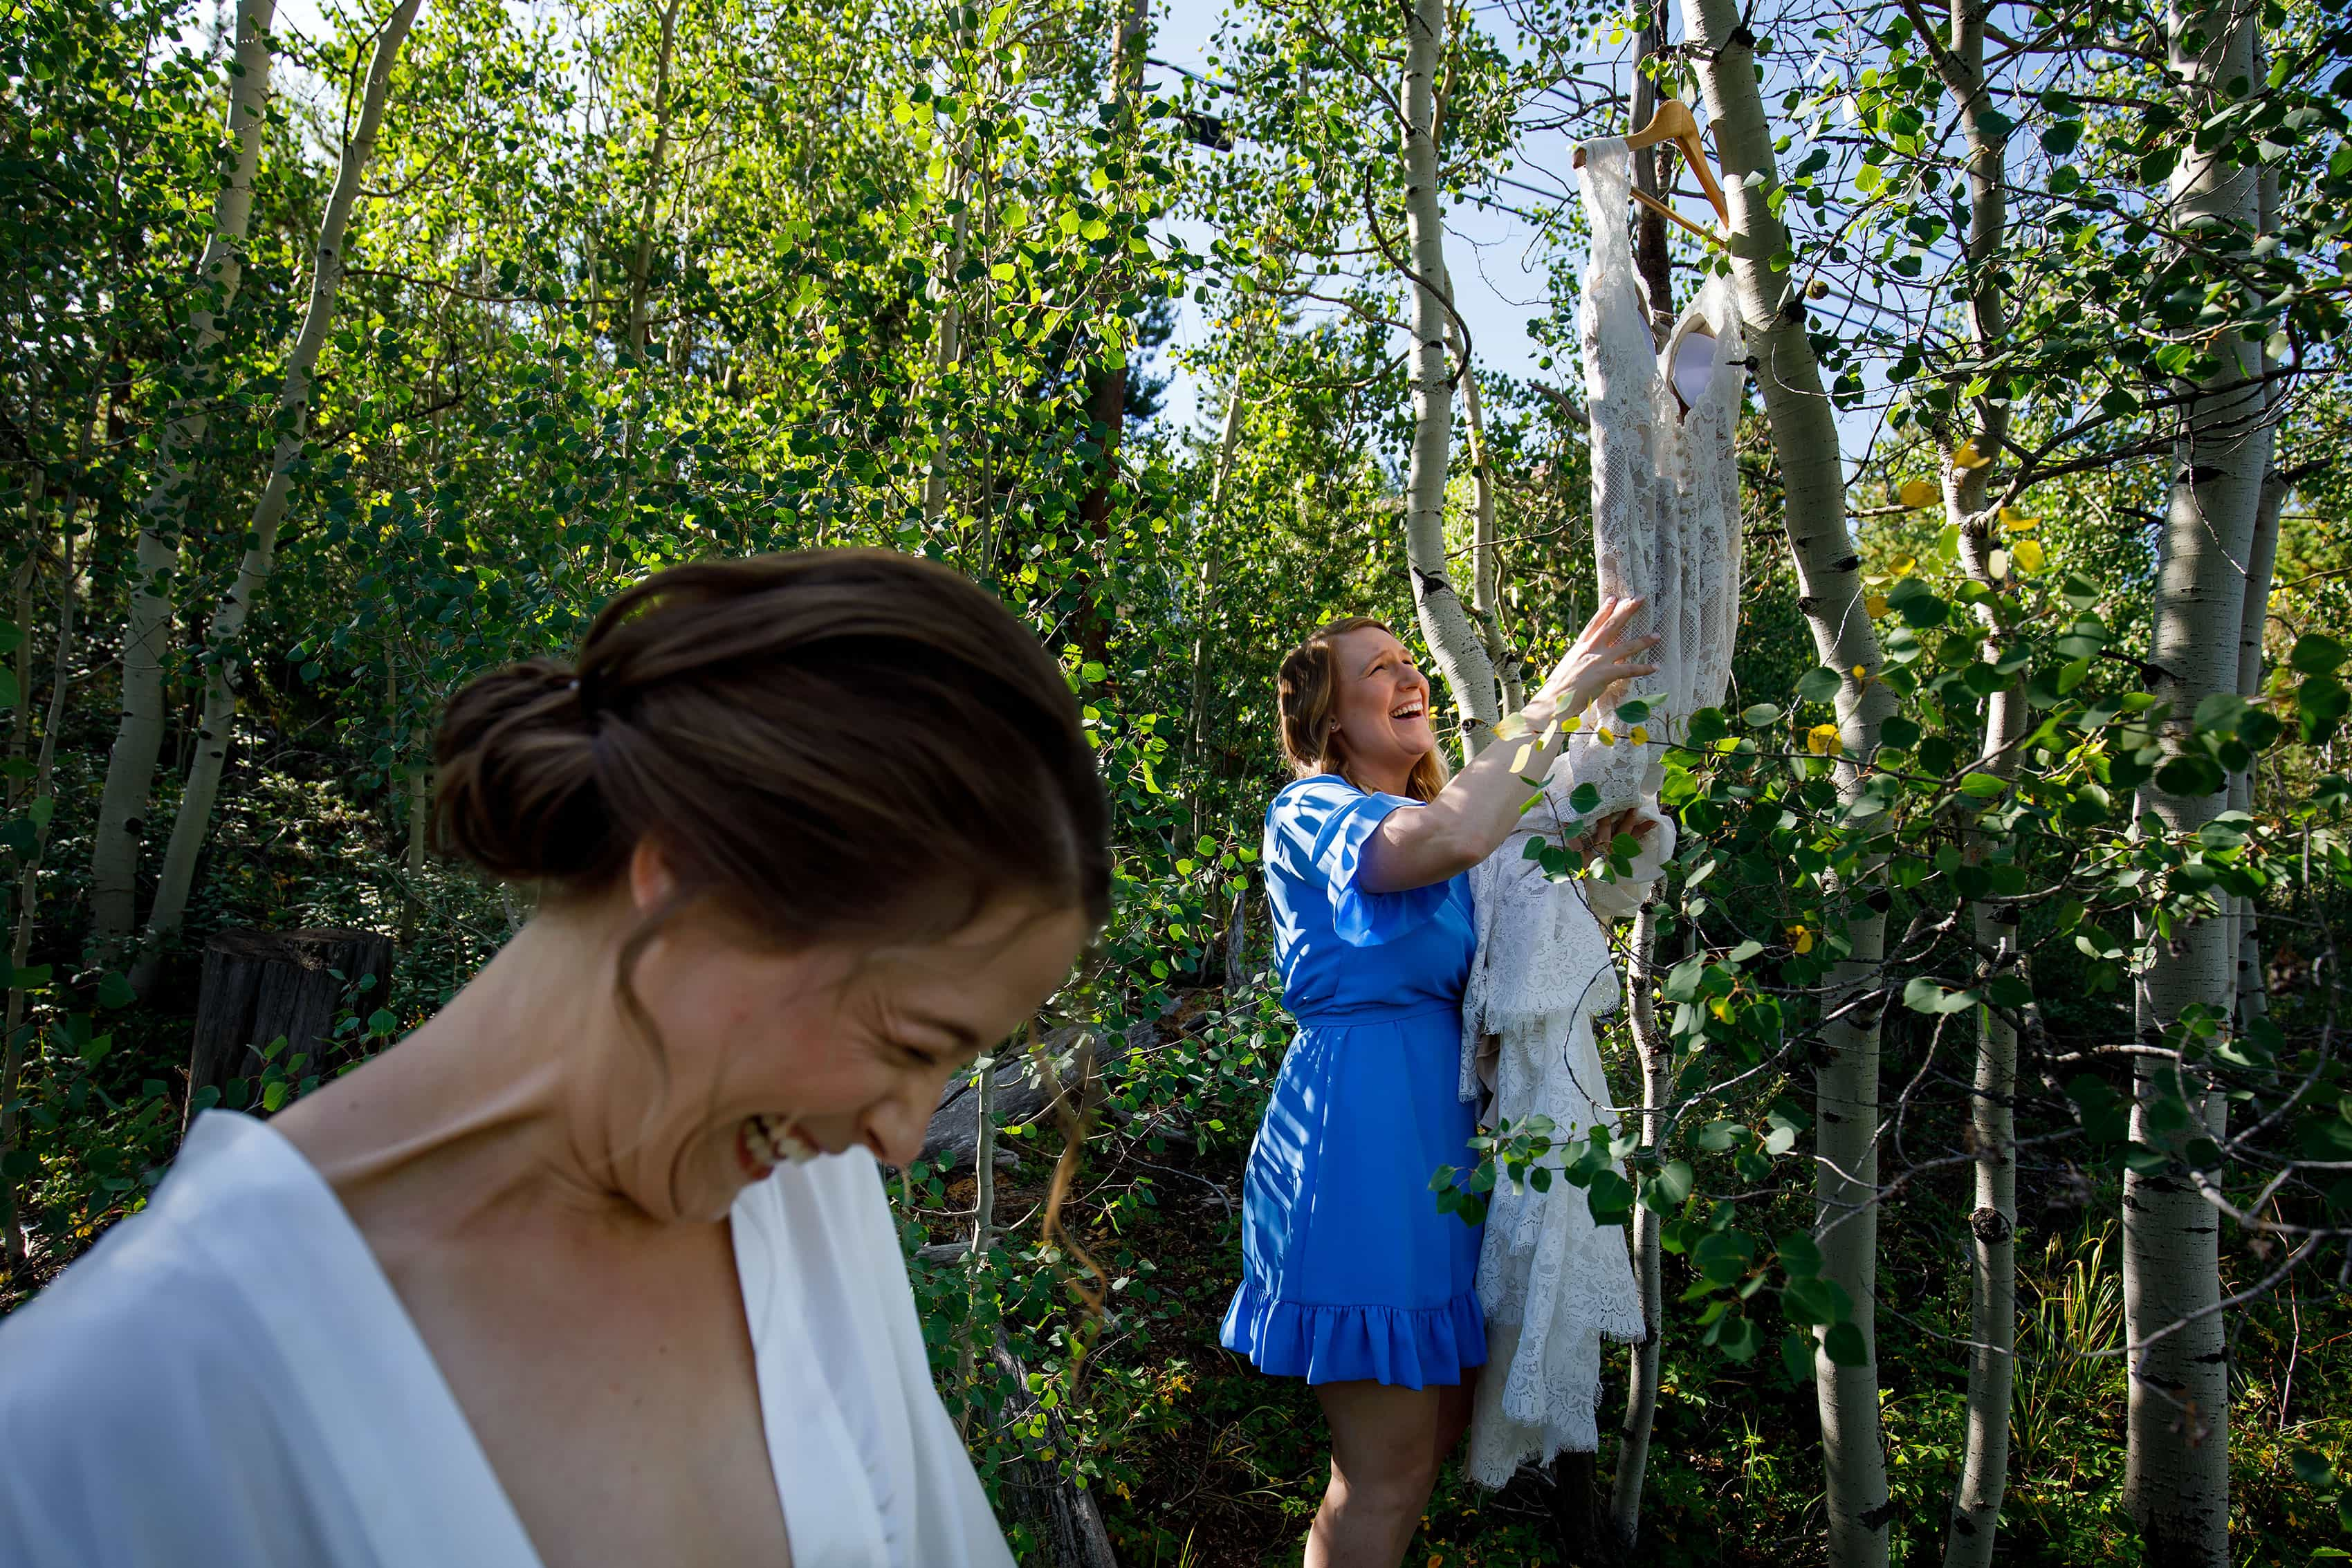 The bride and cousin laugh while trying to get the dress down from a tree